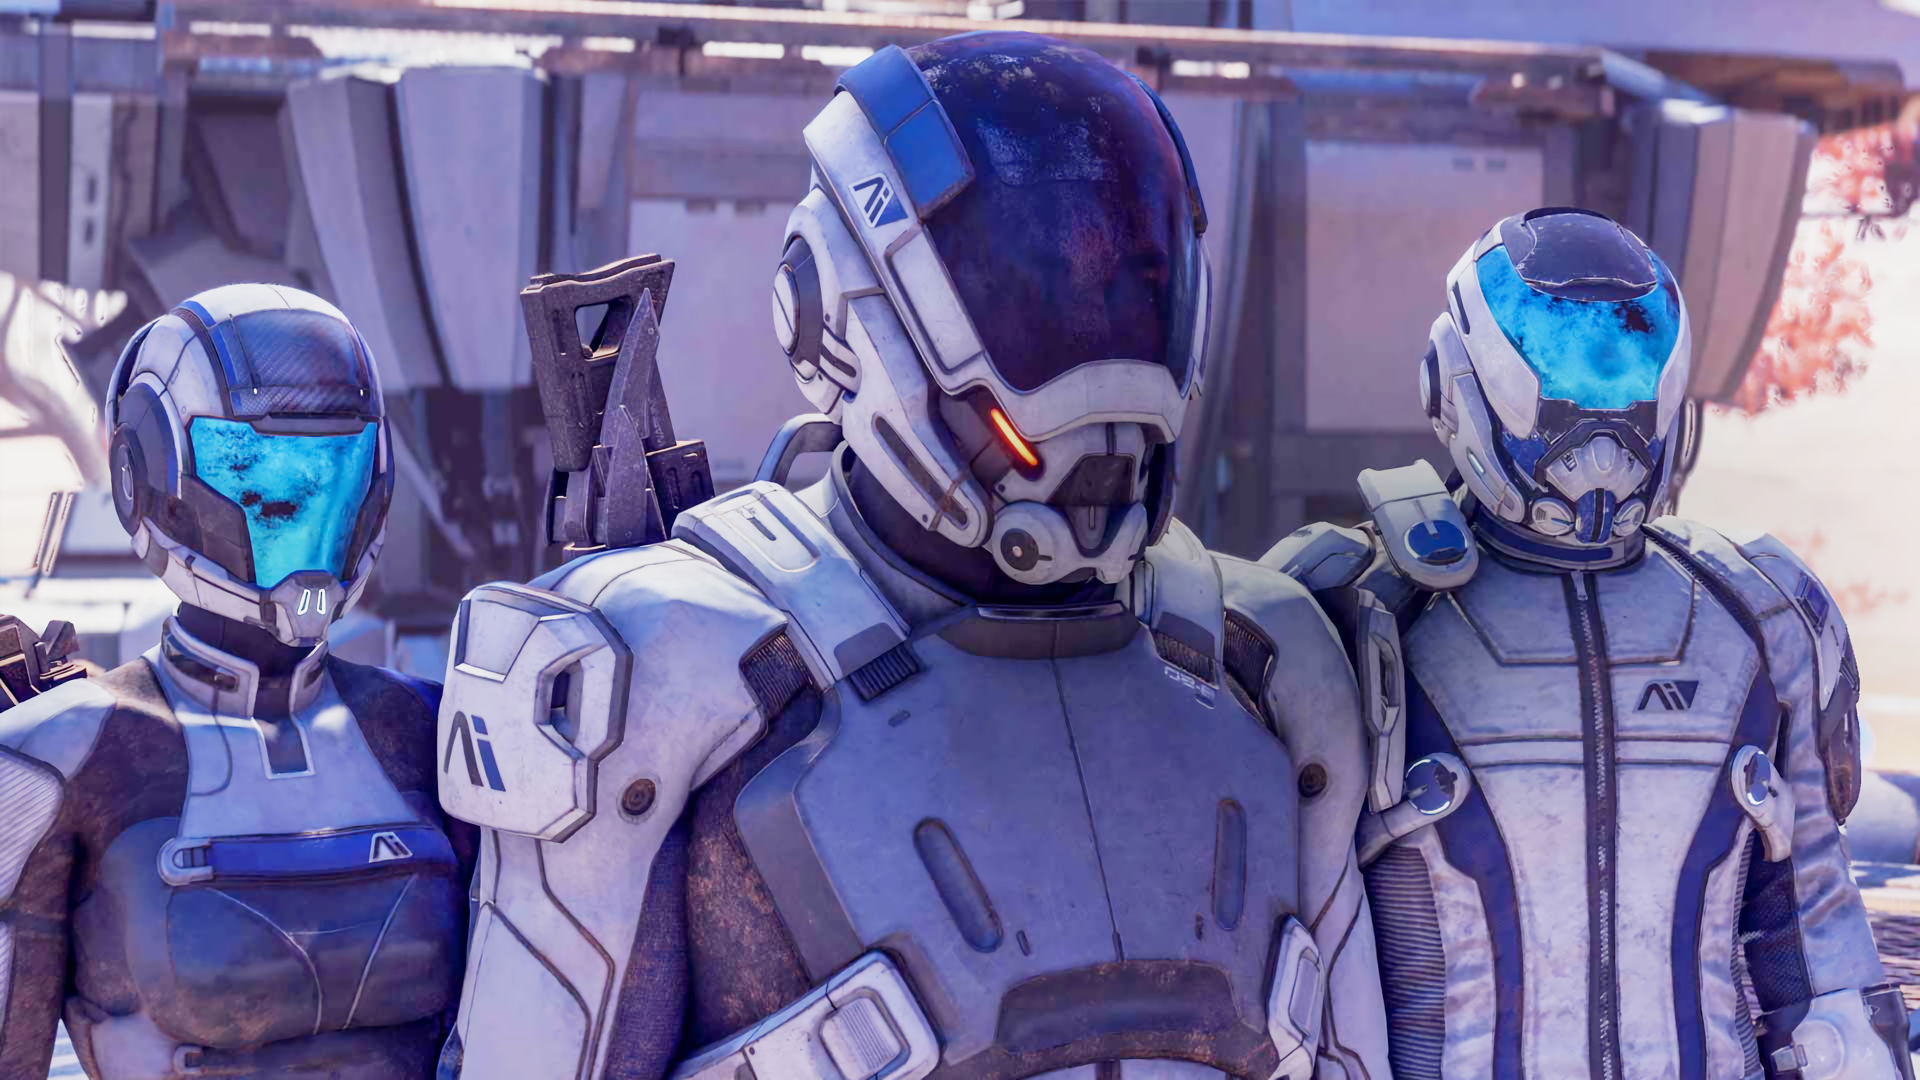 Mass Effect Andromeda costumes